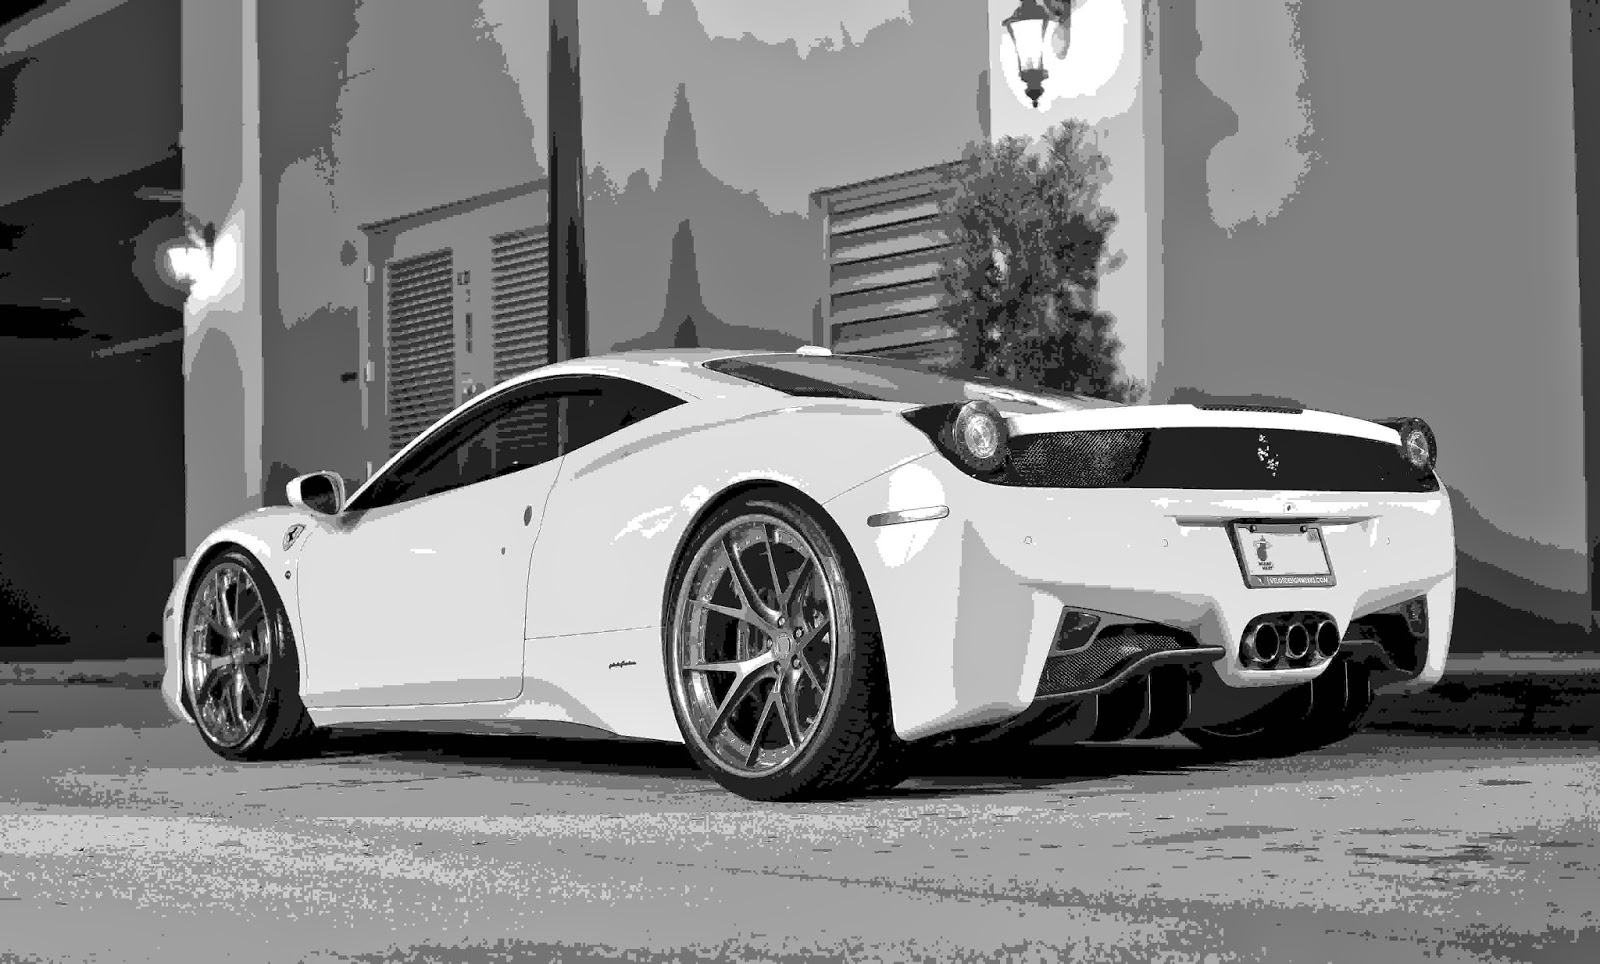 Wallpaper Ferrari 458 white